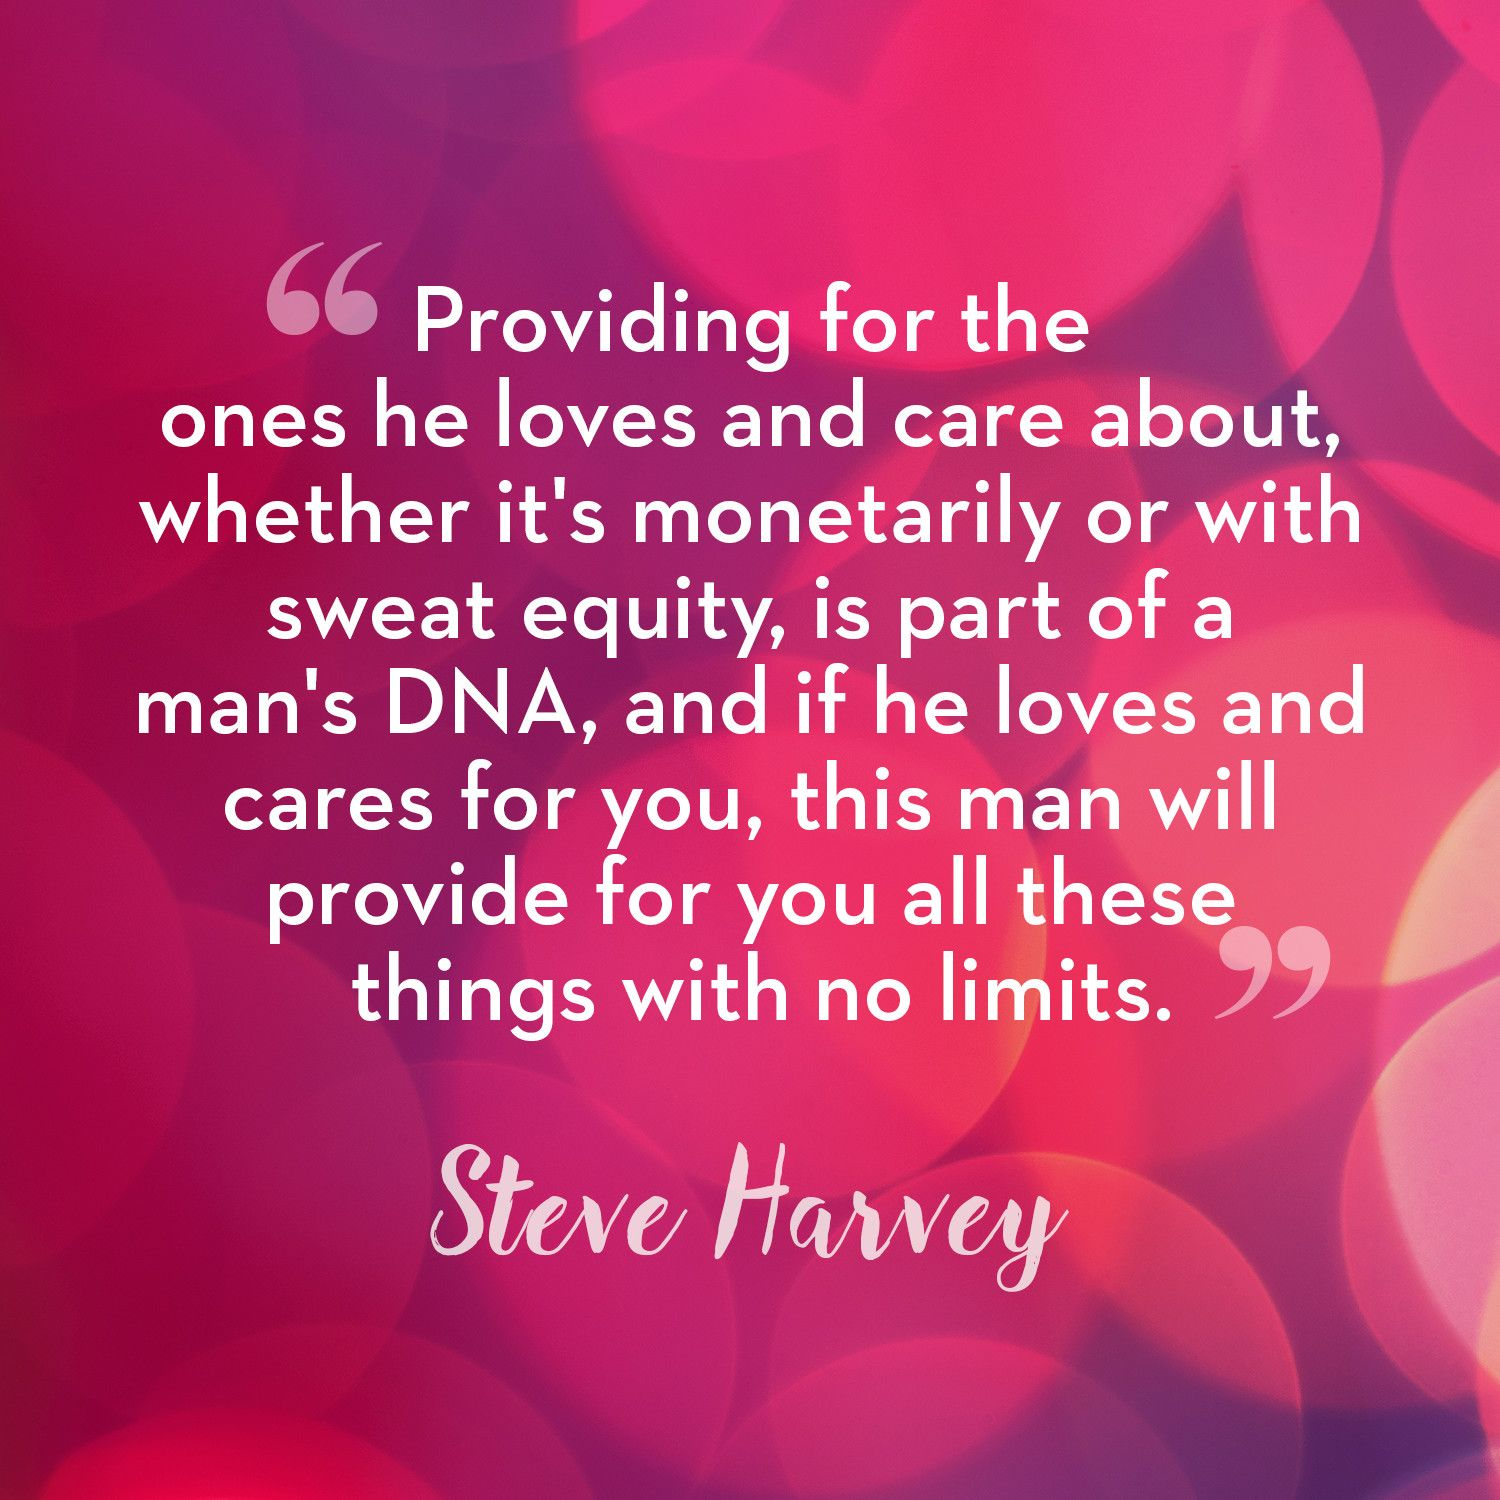 Quotes About Love And Relationships 50 Best Relationship Quotes From Steve Harvey  Steve Harvey